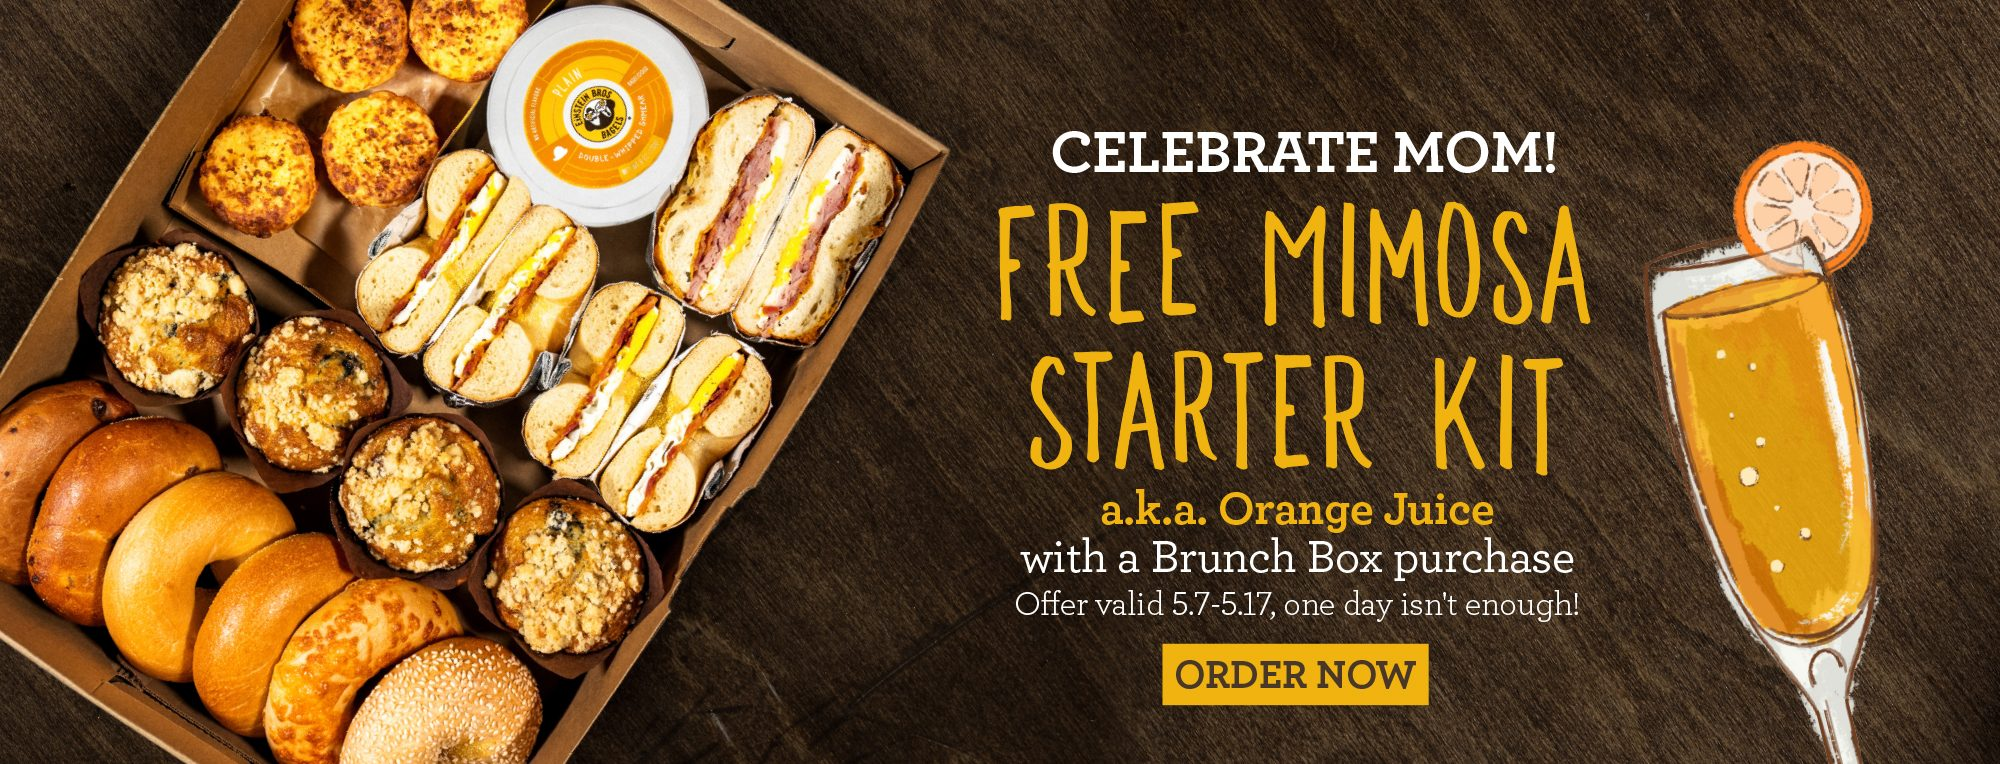 Free Mimosa Starter Kit with Brunch Box Purchase for Mother's Day